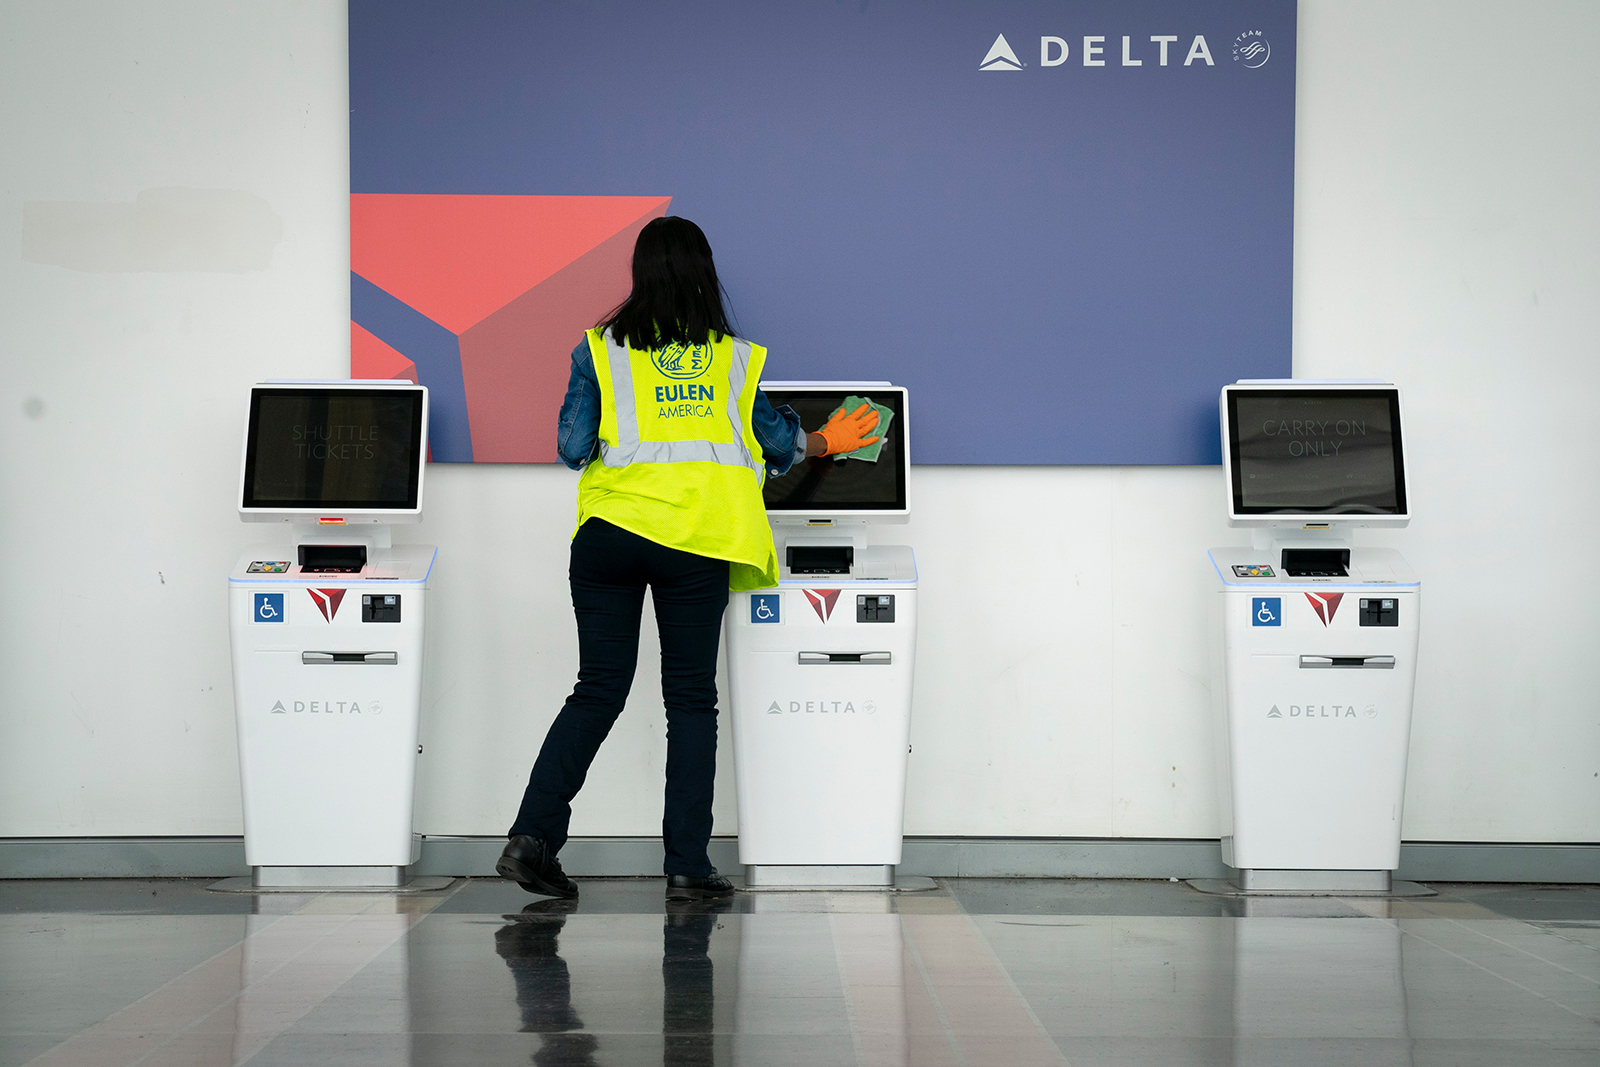 A worker cleans the screens at a Delta self check-in kiosk at Ronald Reagan Washington National Airport, on May 5, in Arlington, Virginia.